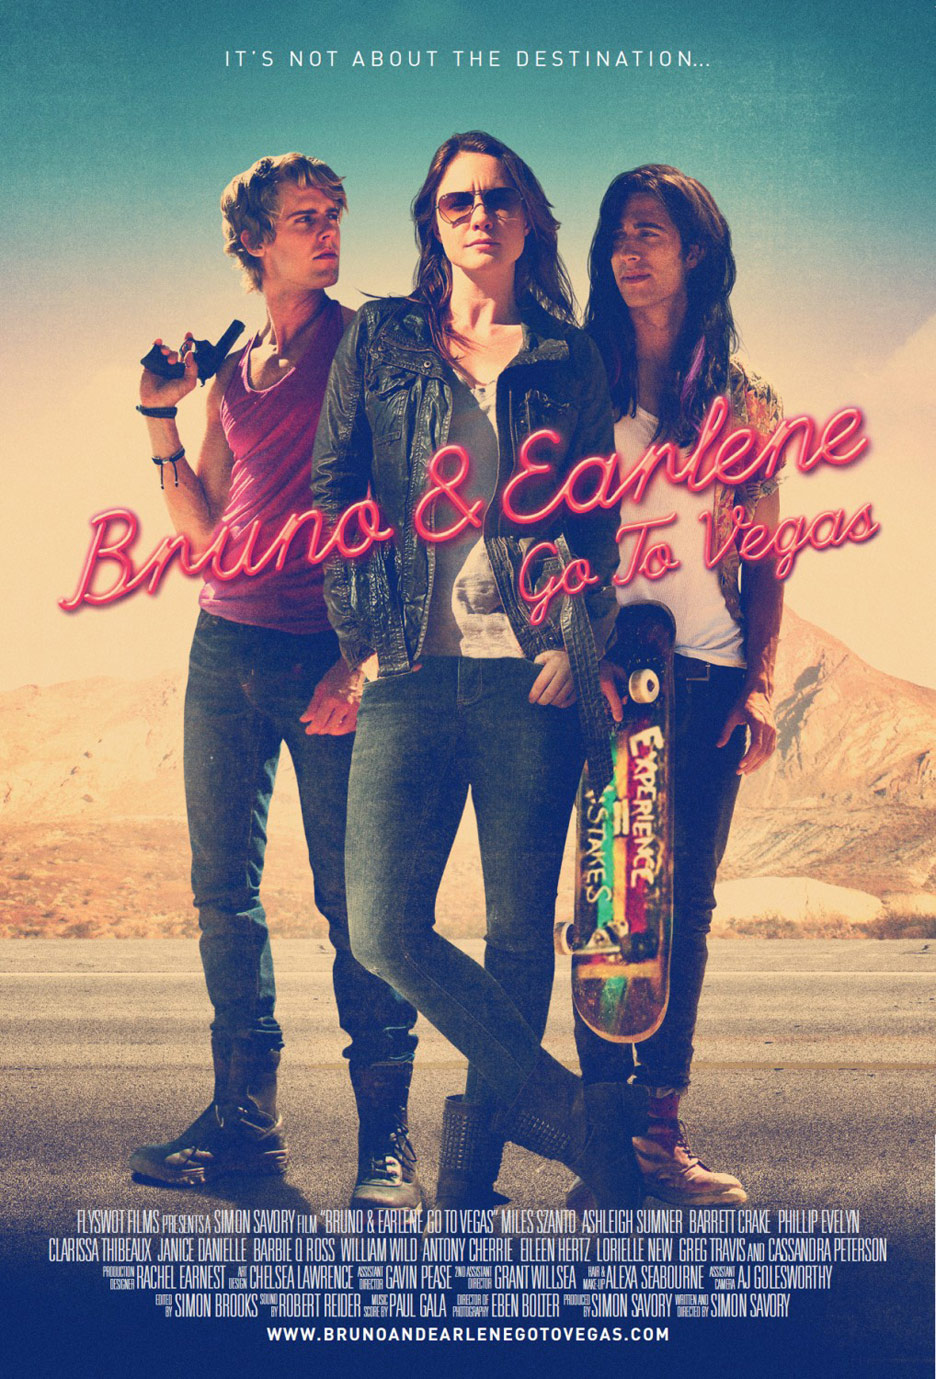 Bruno & Earlene Go to Vegas Poster #1